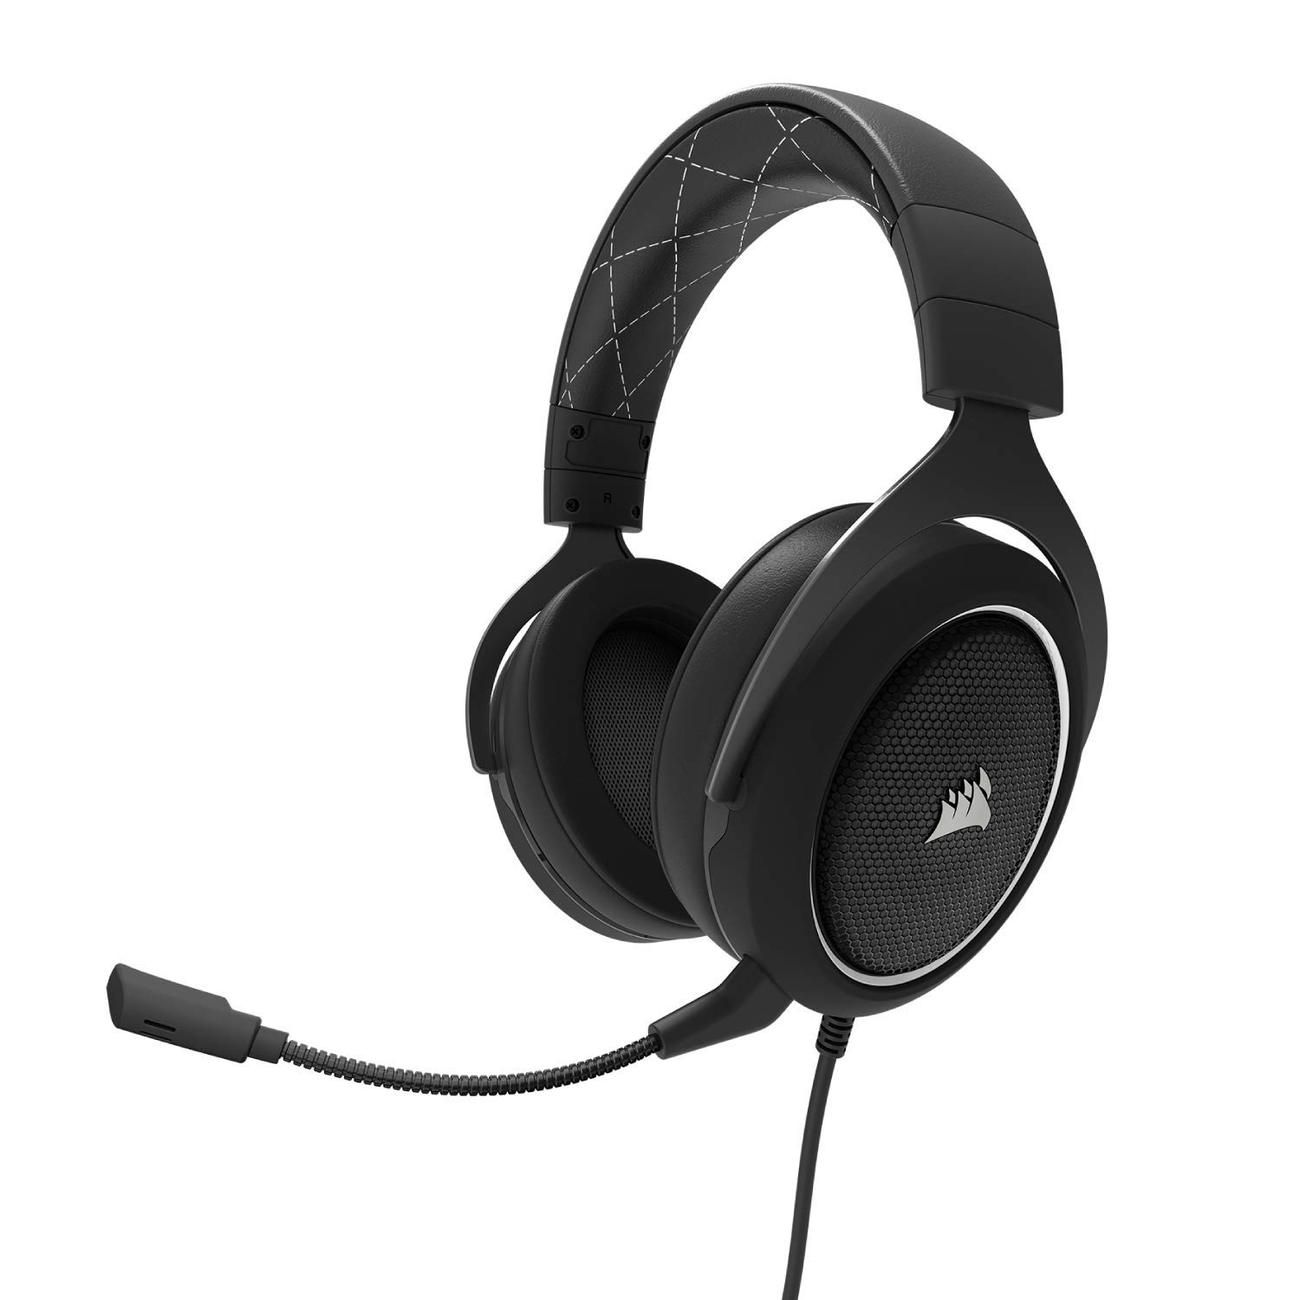 HEADSET GAMER CORSAIR HS60 PRETO/BRANCO SURROUND 7.1 CA-9011174-NA